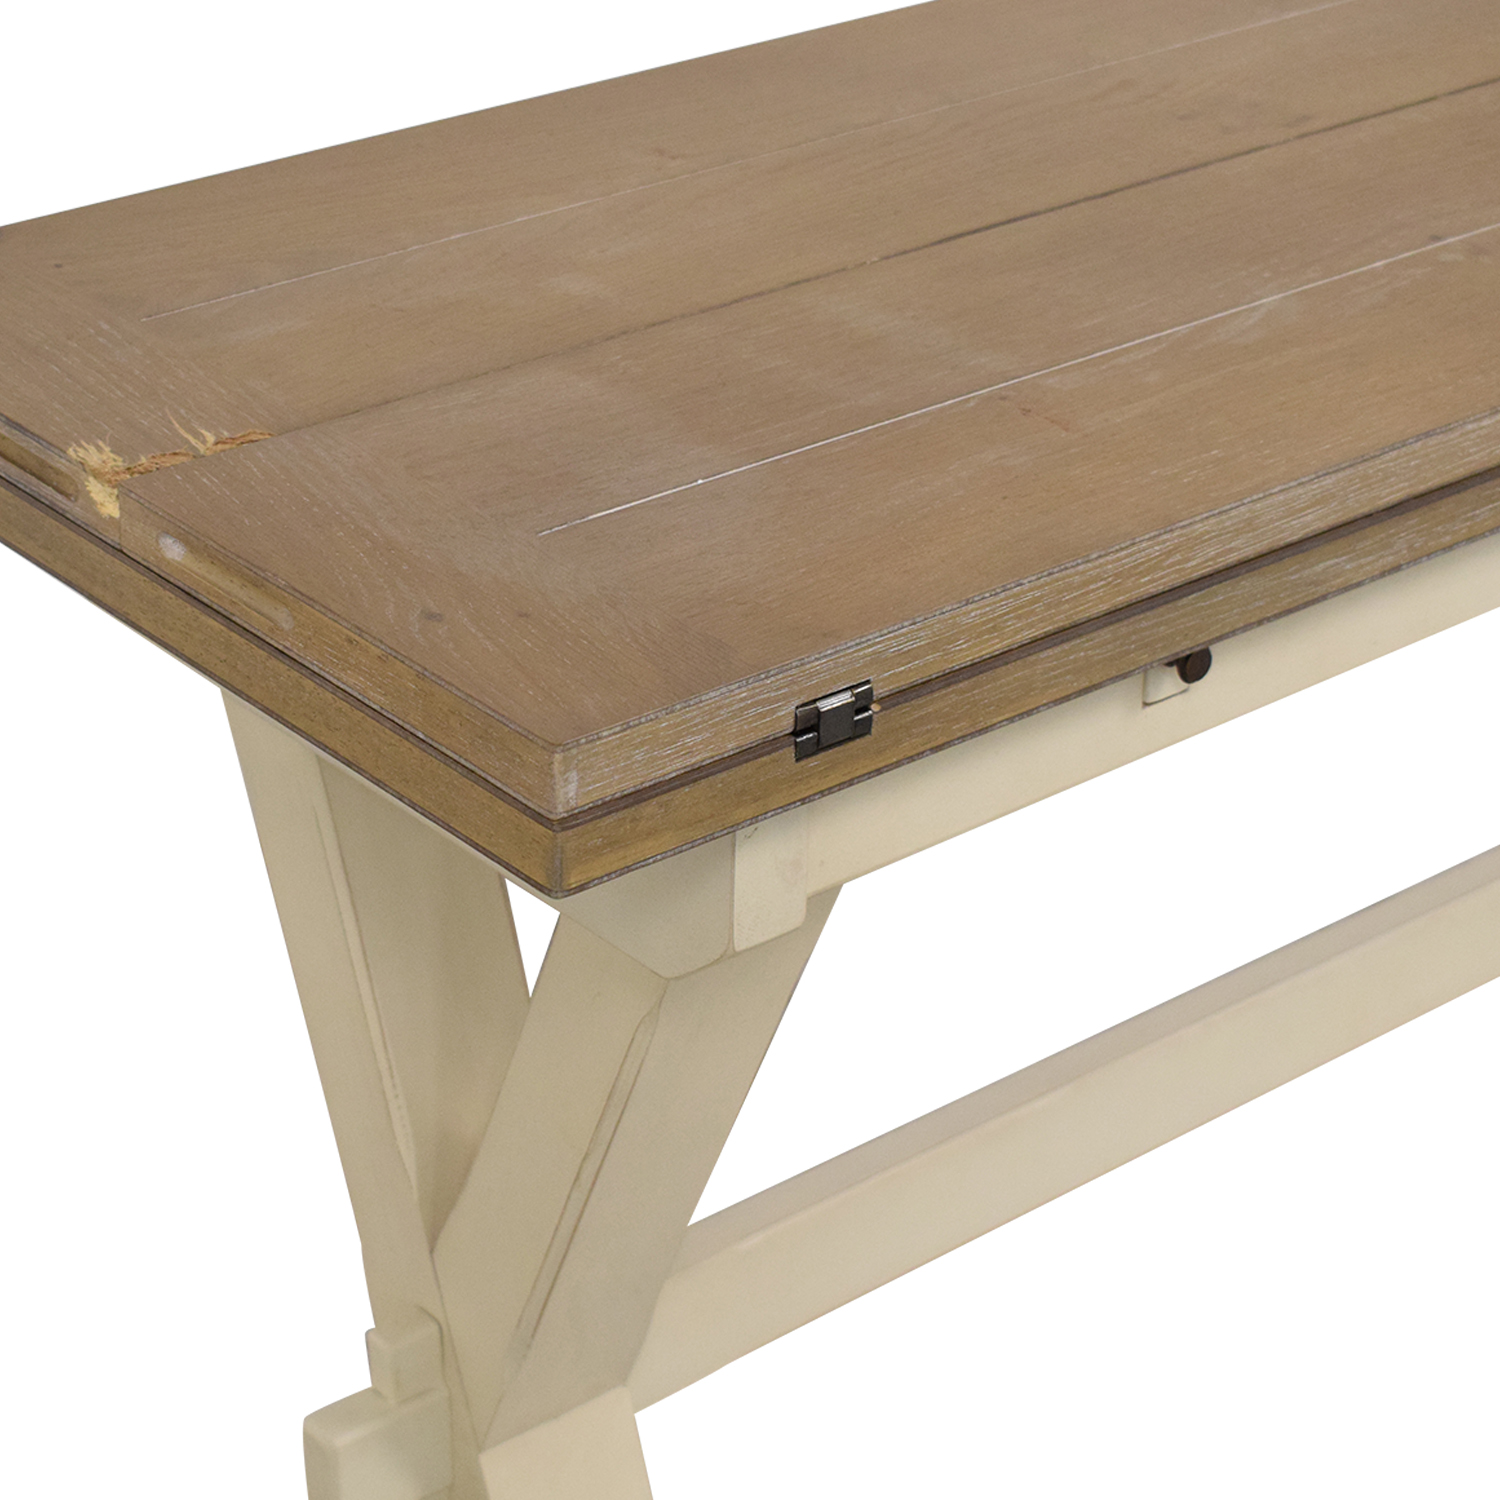 Universal Furniture Universal Furniture Great Rooms Drop Leaf Console Table on sale